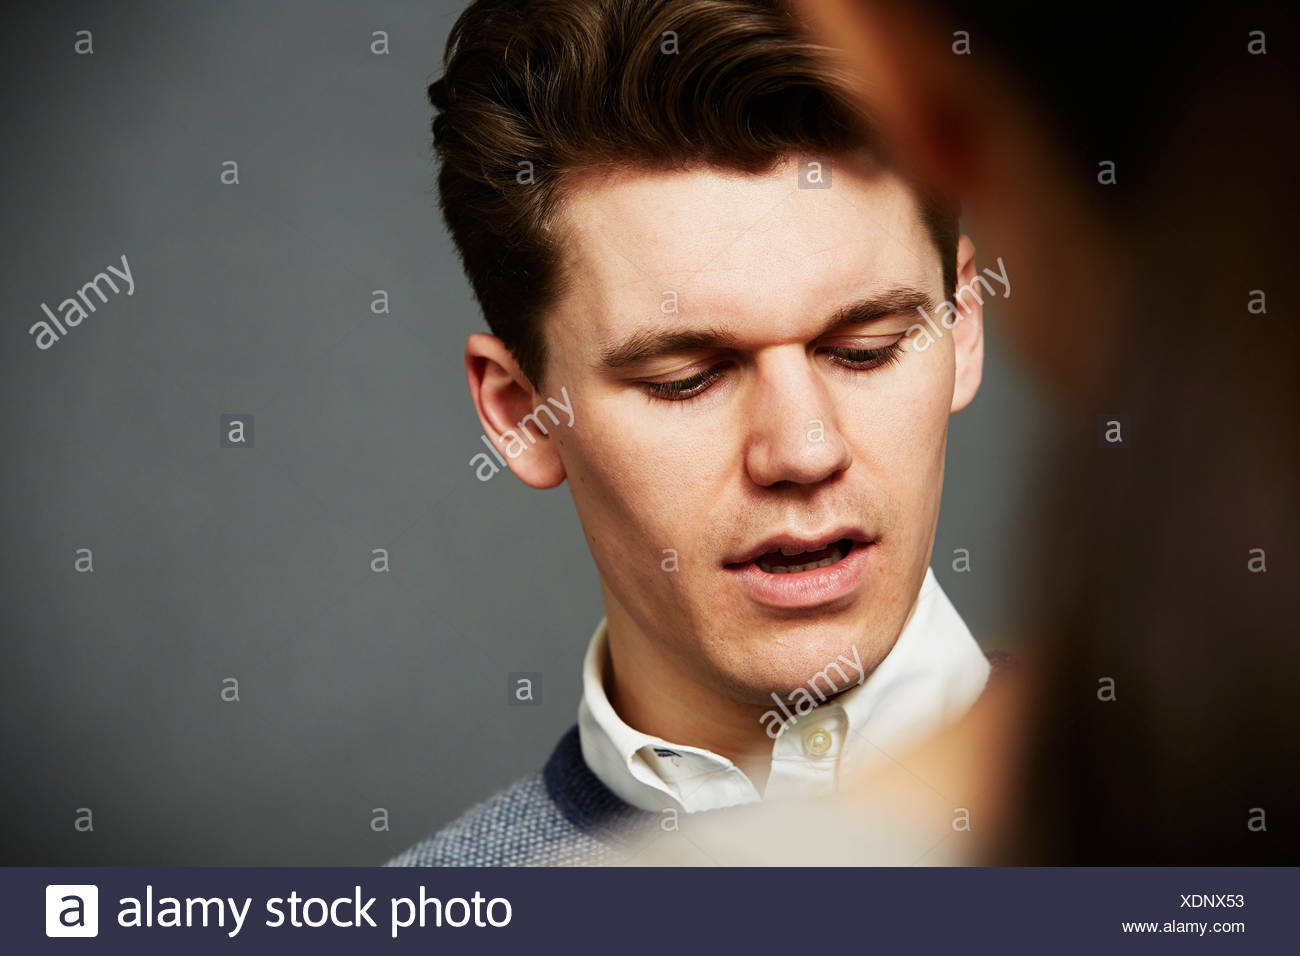 Candid portrait of young man close up - Stock Image